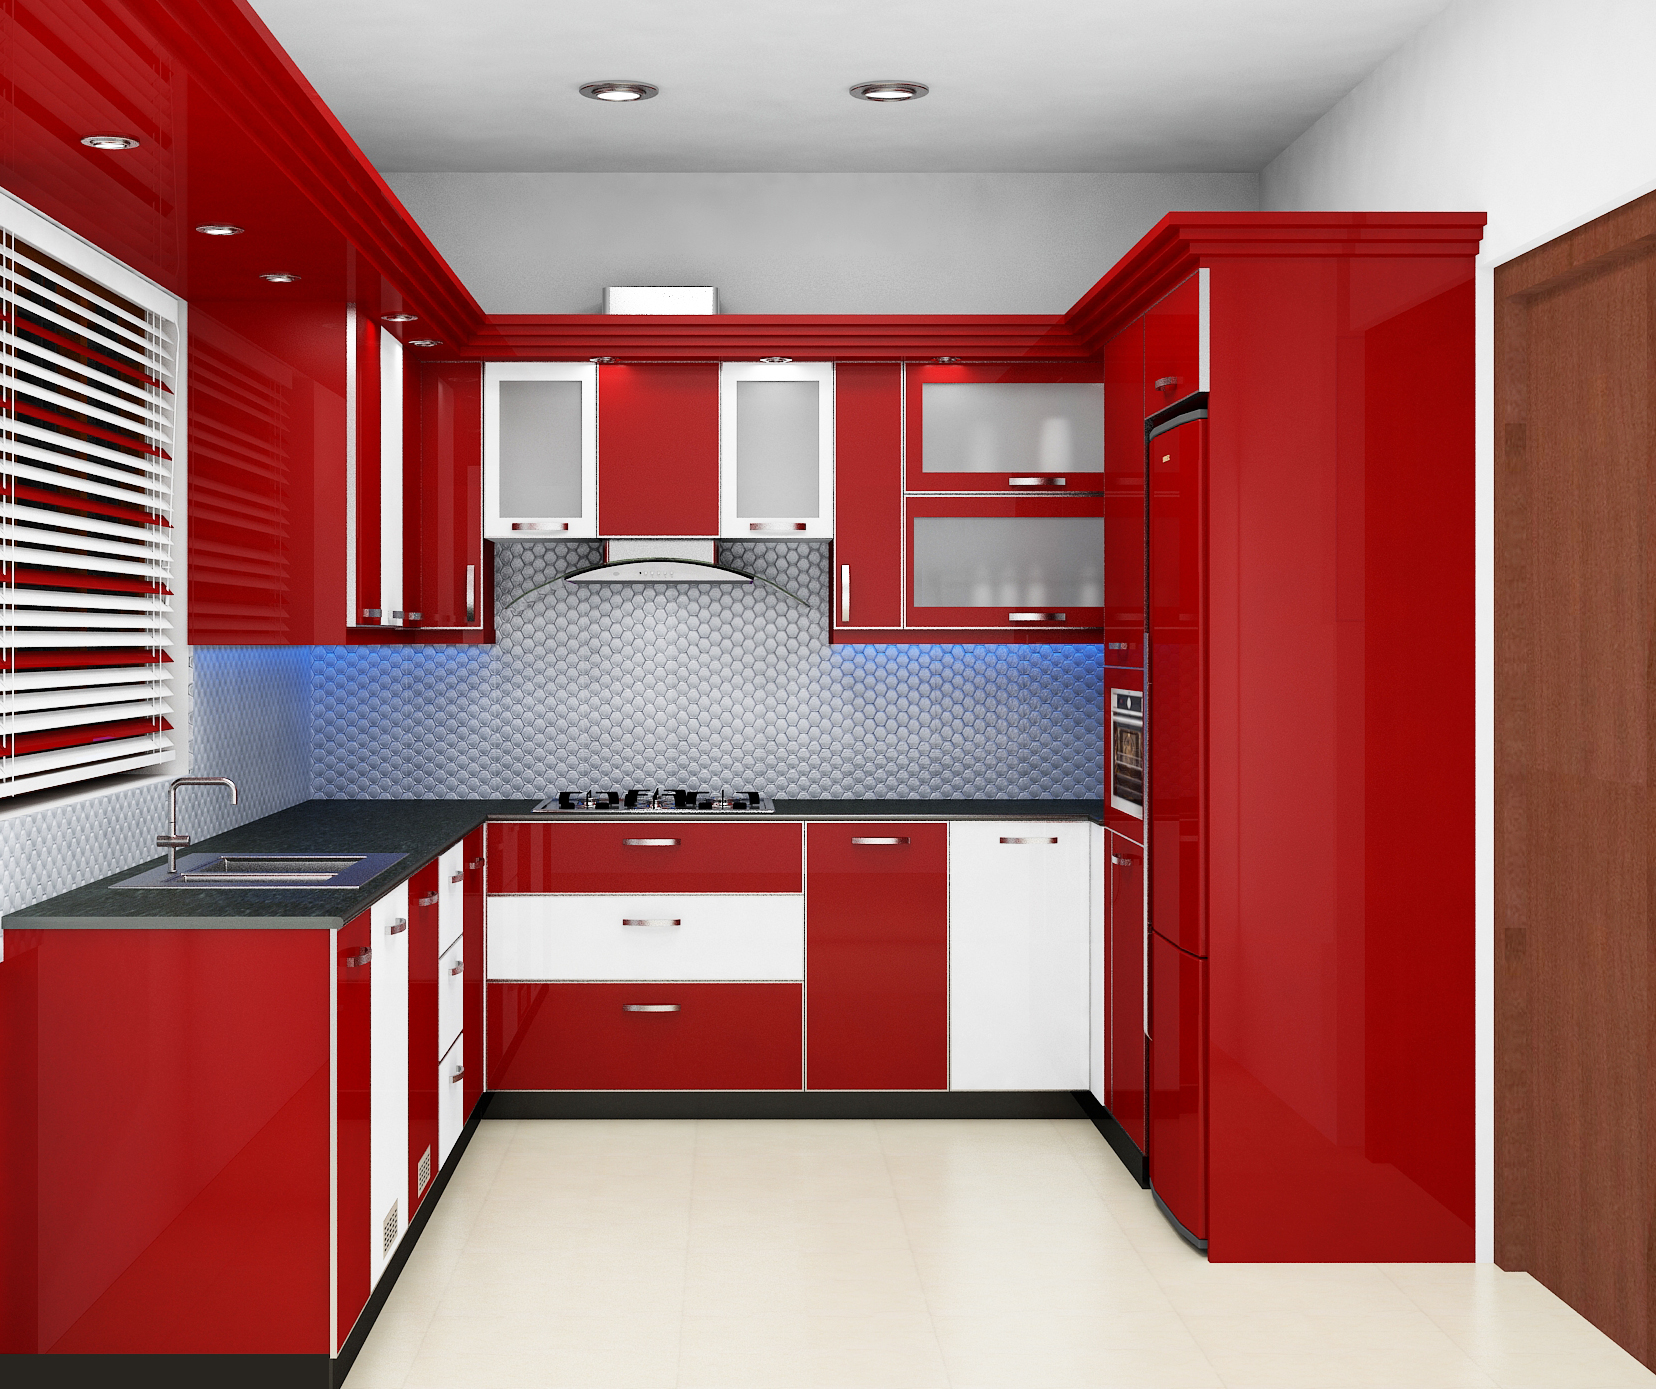 Exemplary and amazing modular kitchen home interior design for Good homes interior